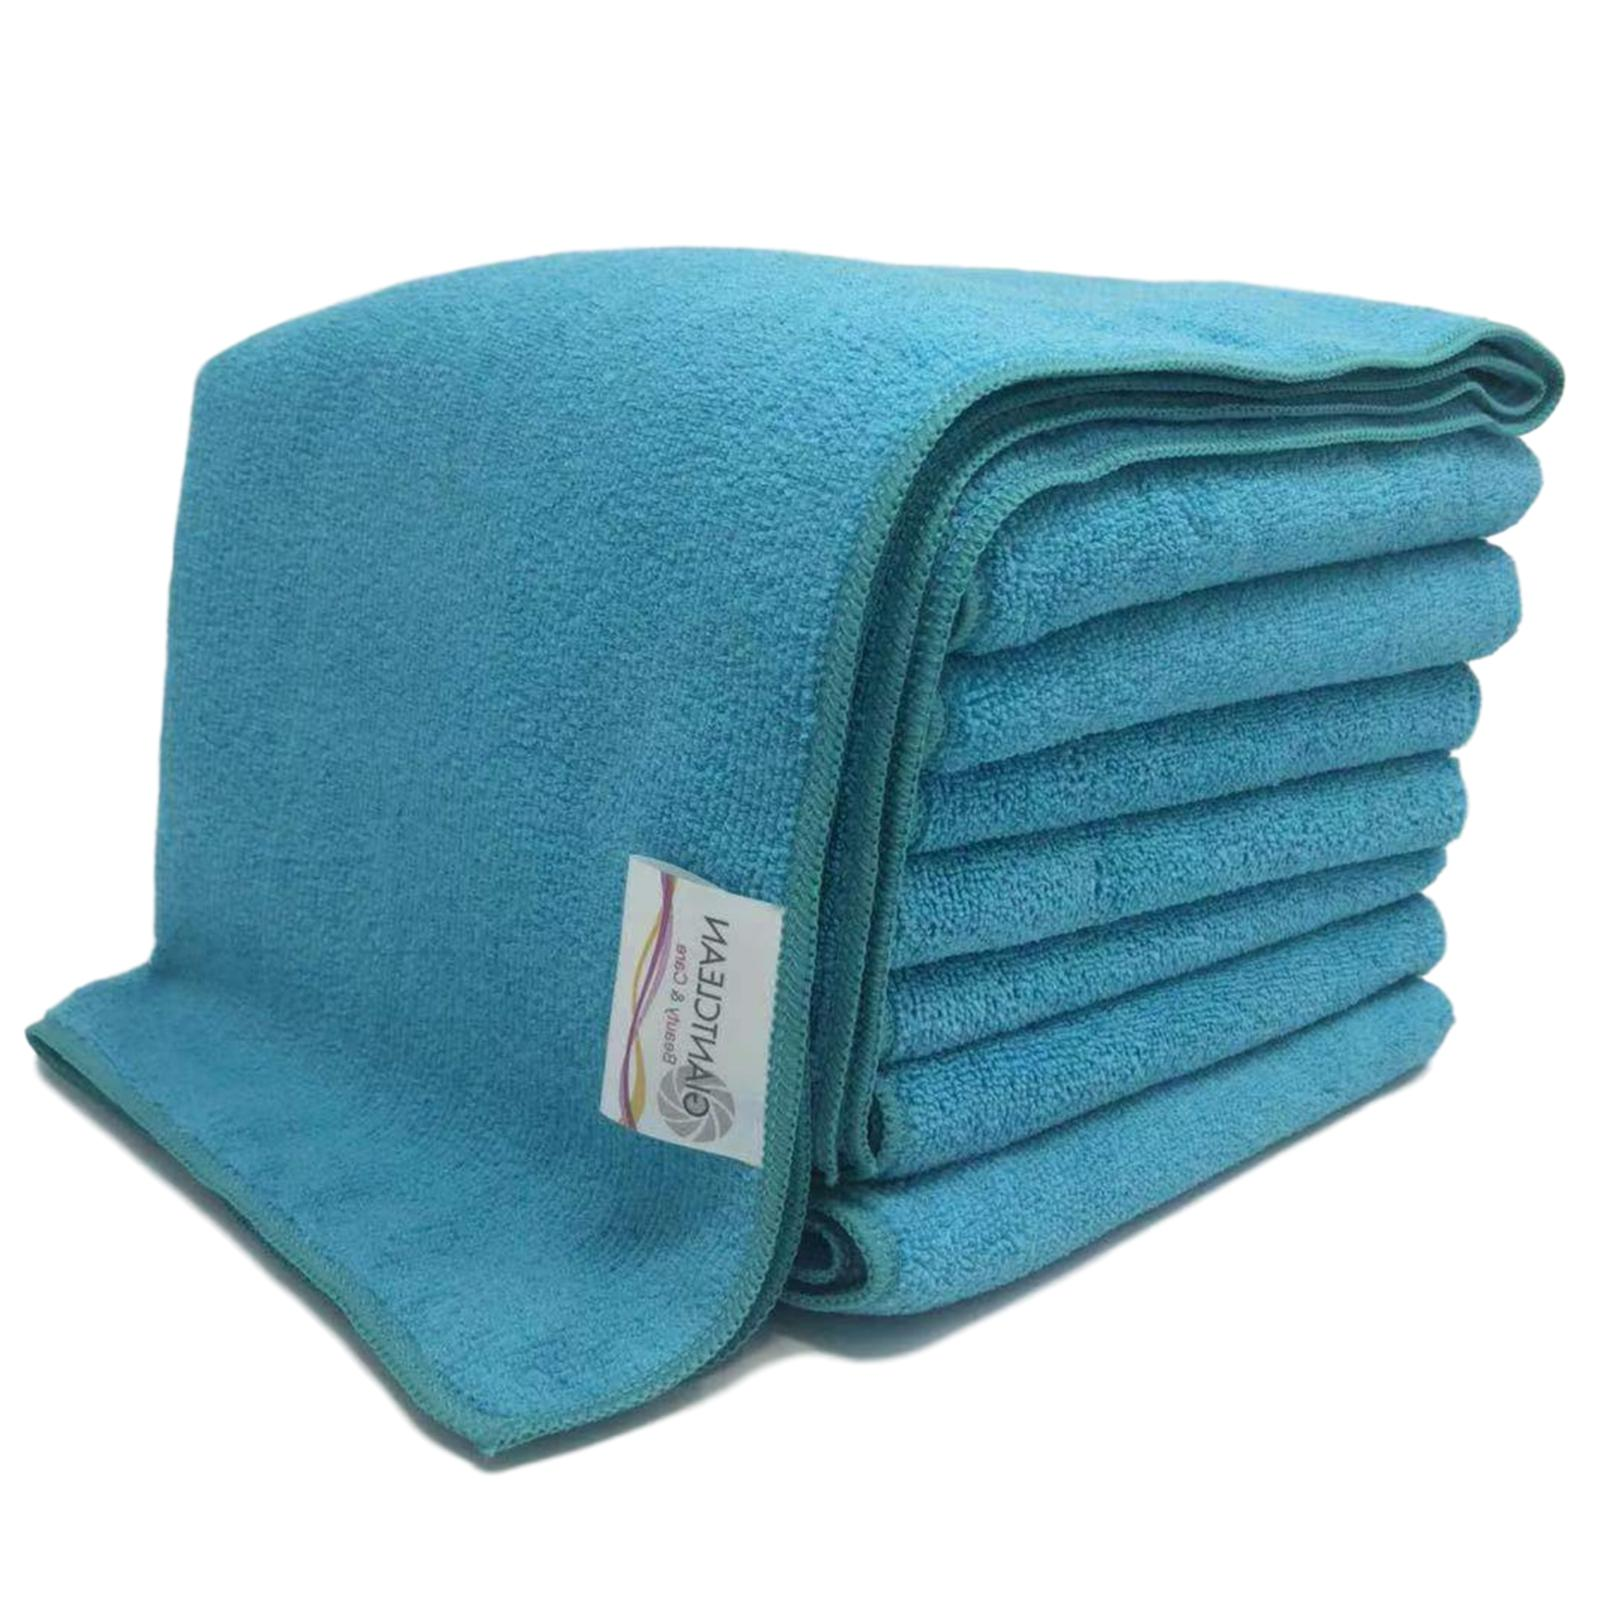 Professional Quick Dry Hair Towel, Pack